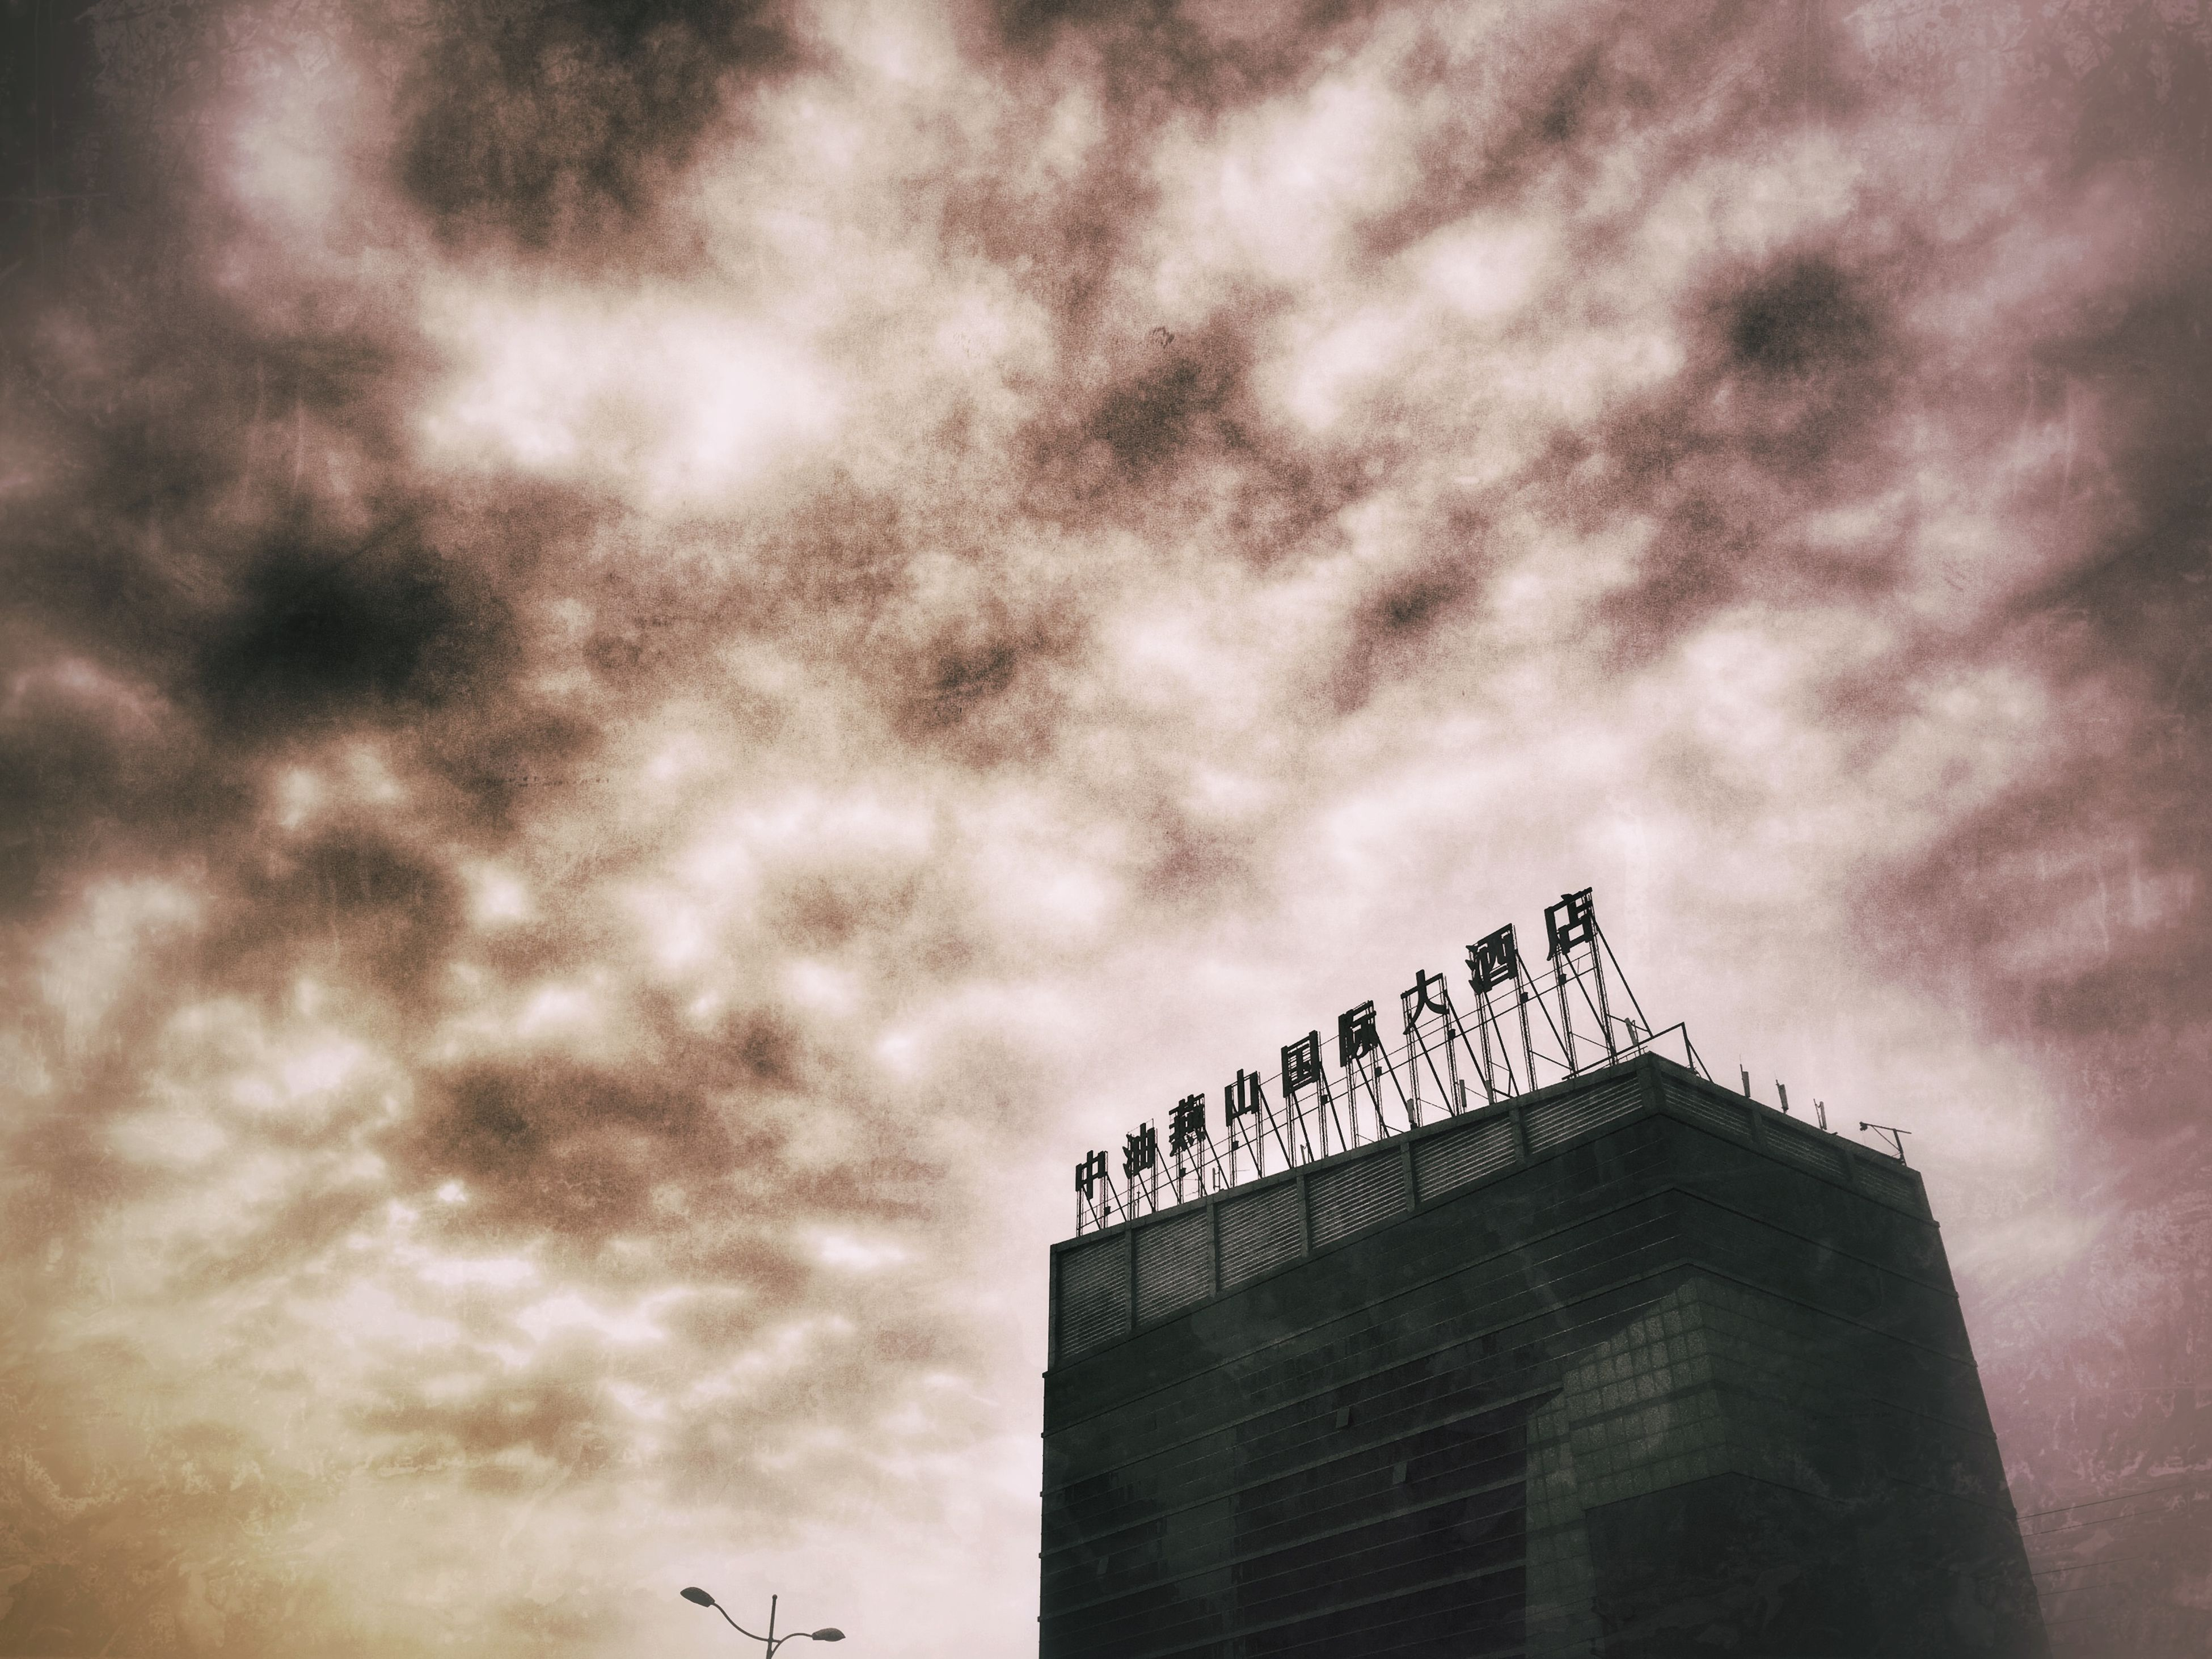 low angle view, sky, built structure, architecture, building exterior, cloud - sky, cloudy, bird, overcast, outdoors, day, cloud, high section, no people, weather, communication, building, animal themes, text, animals in the wild